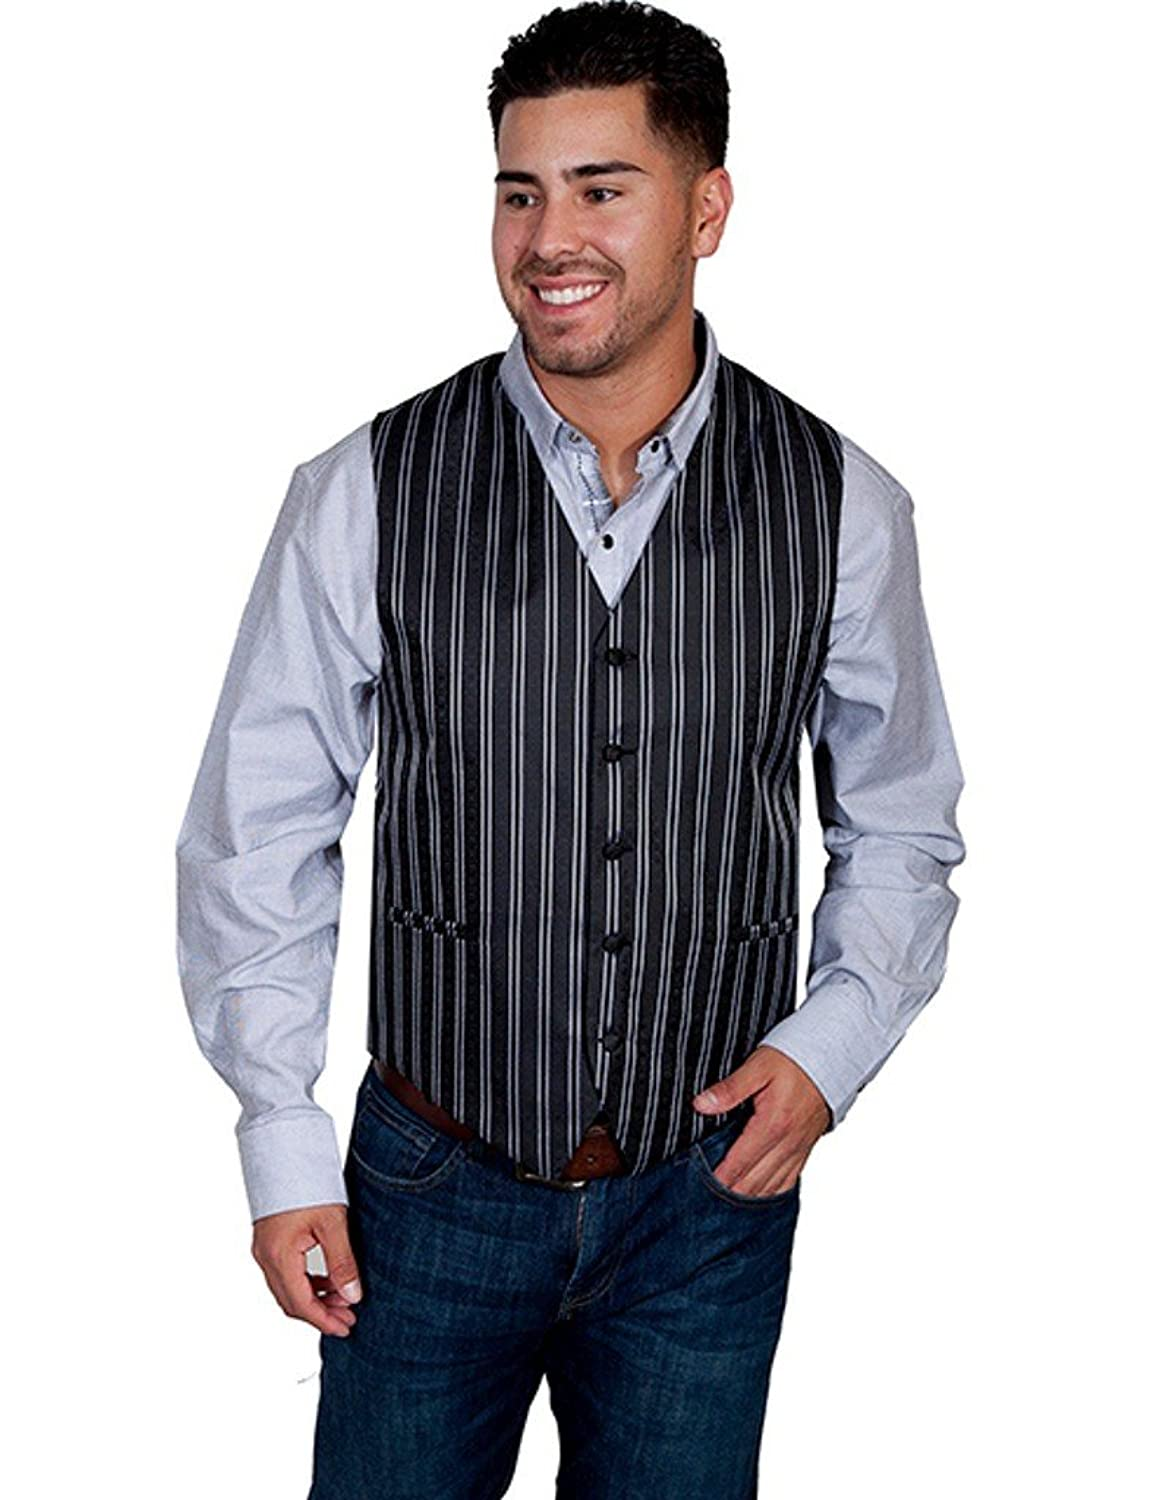 Men's Steampunk Vests, Waistcoats, Corsets BIg TALL Sophisticated Double Pinstripe Western Vest $55.05 AT vintagedancer.com